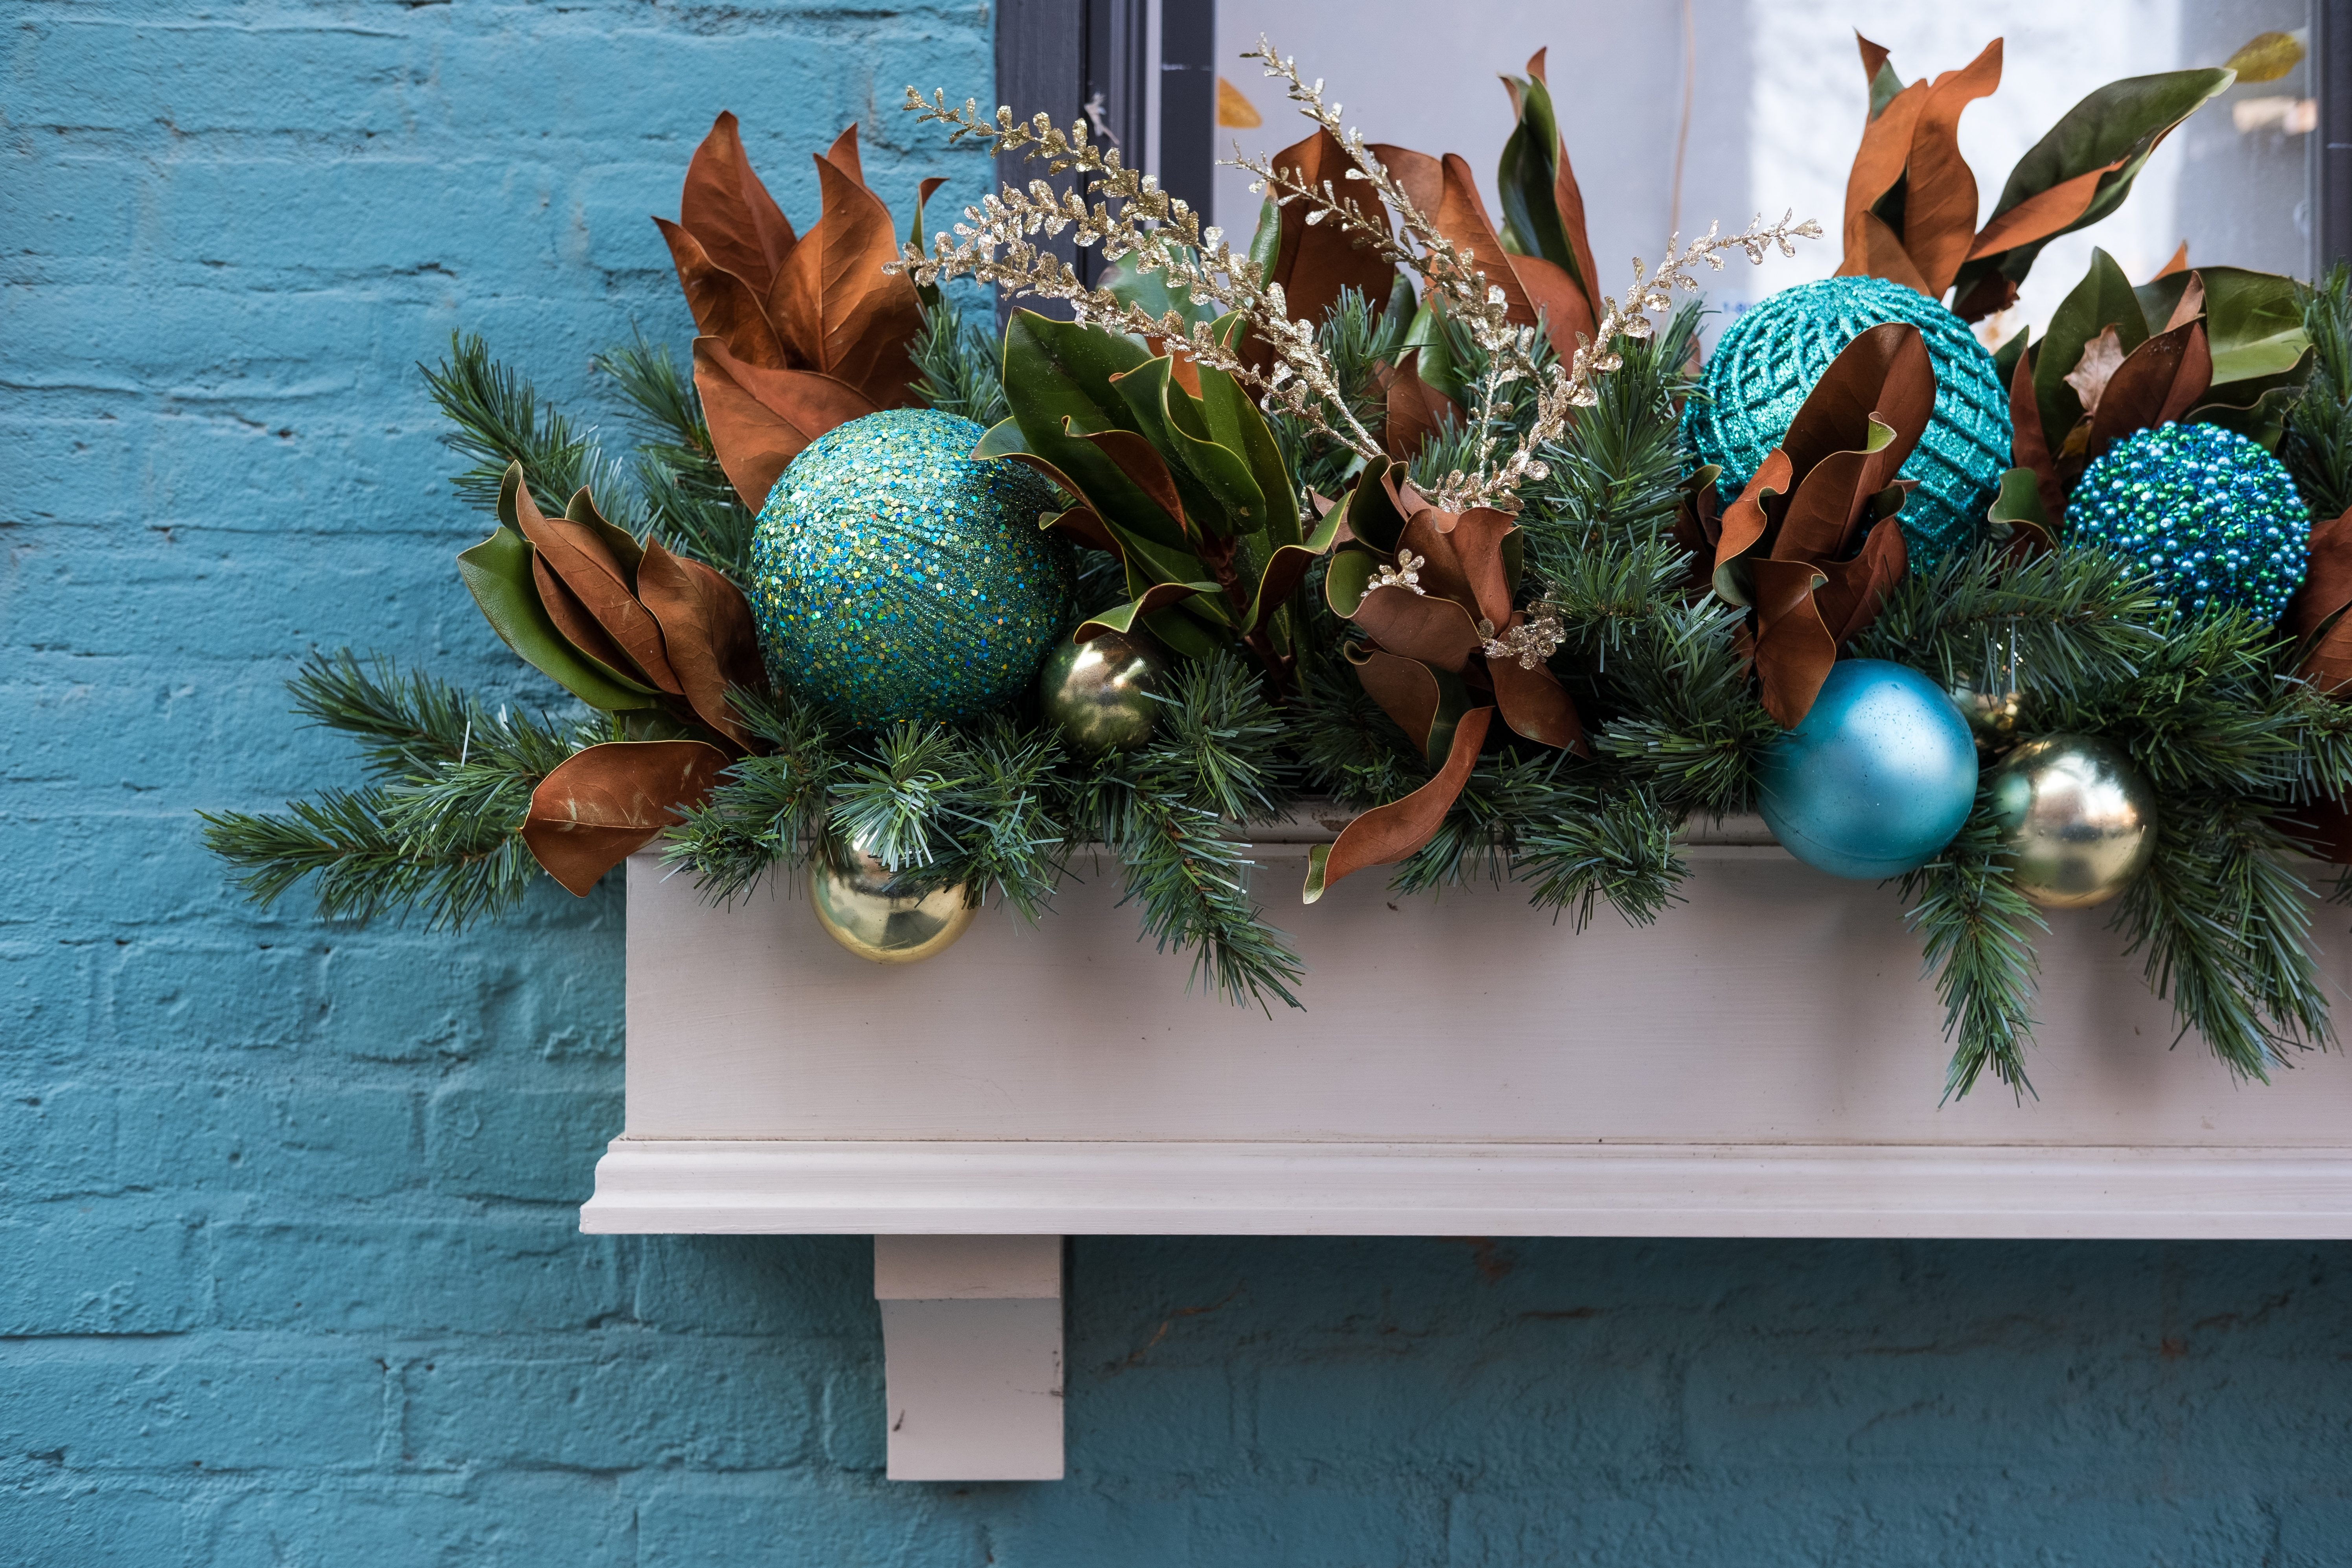 A close-up of the left side of a window planter box decorated for Christmas, set against a bright blue brick building.